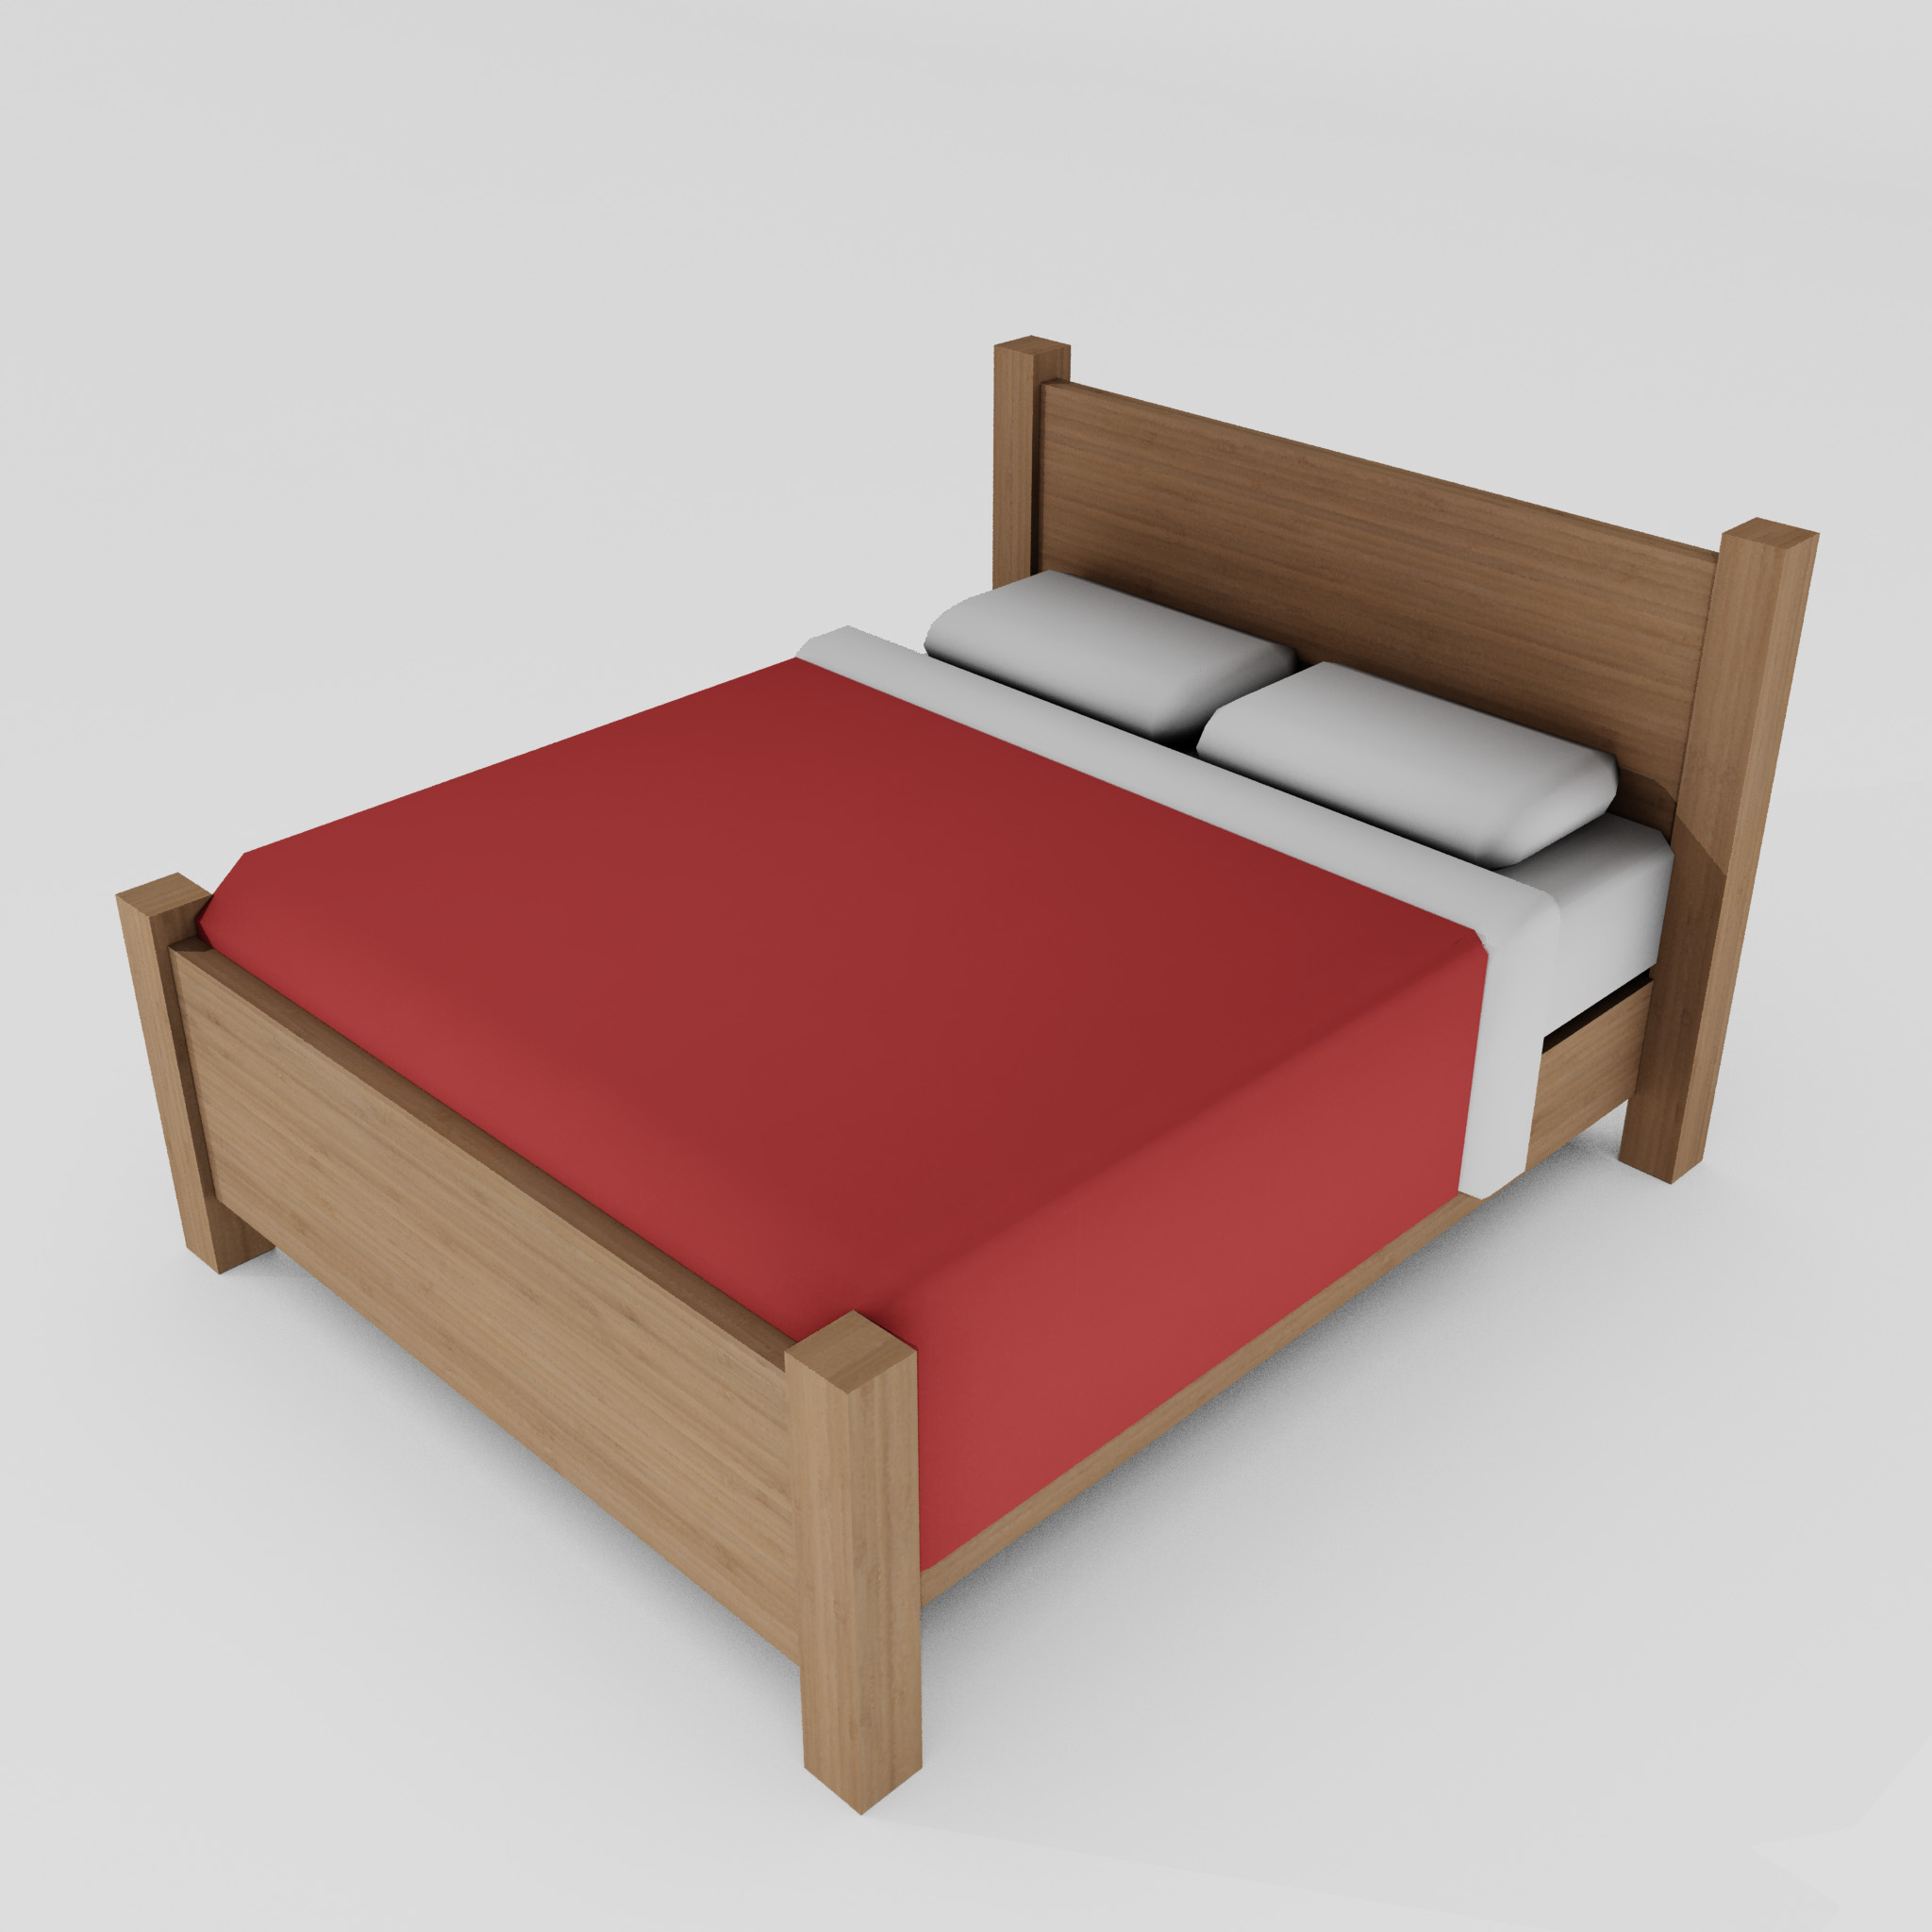 double bed 3d model 3ds max fbx obj 271948